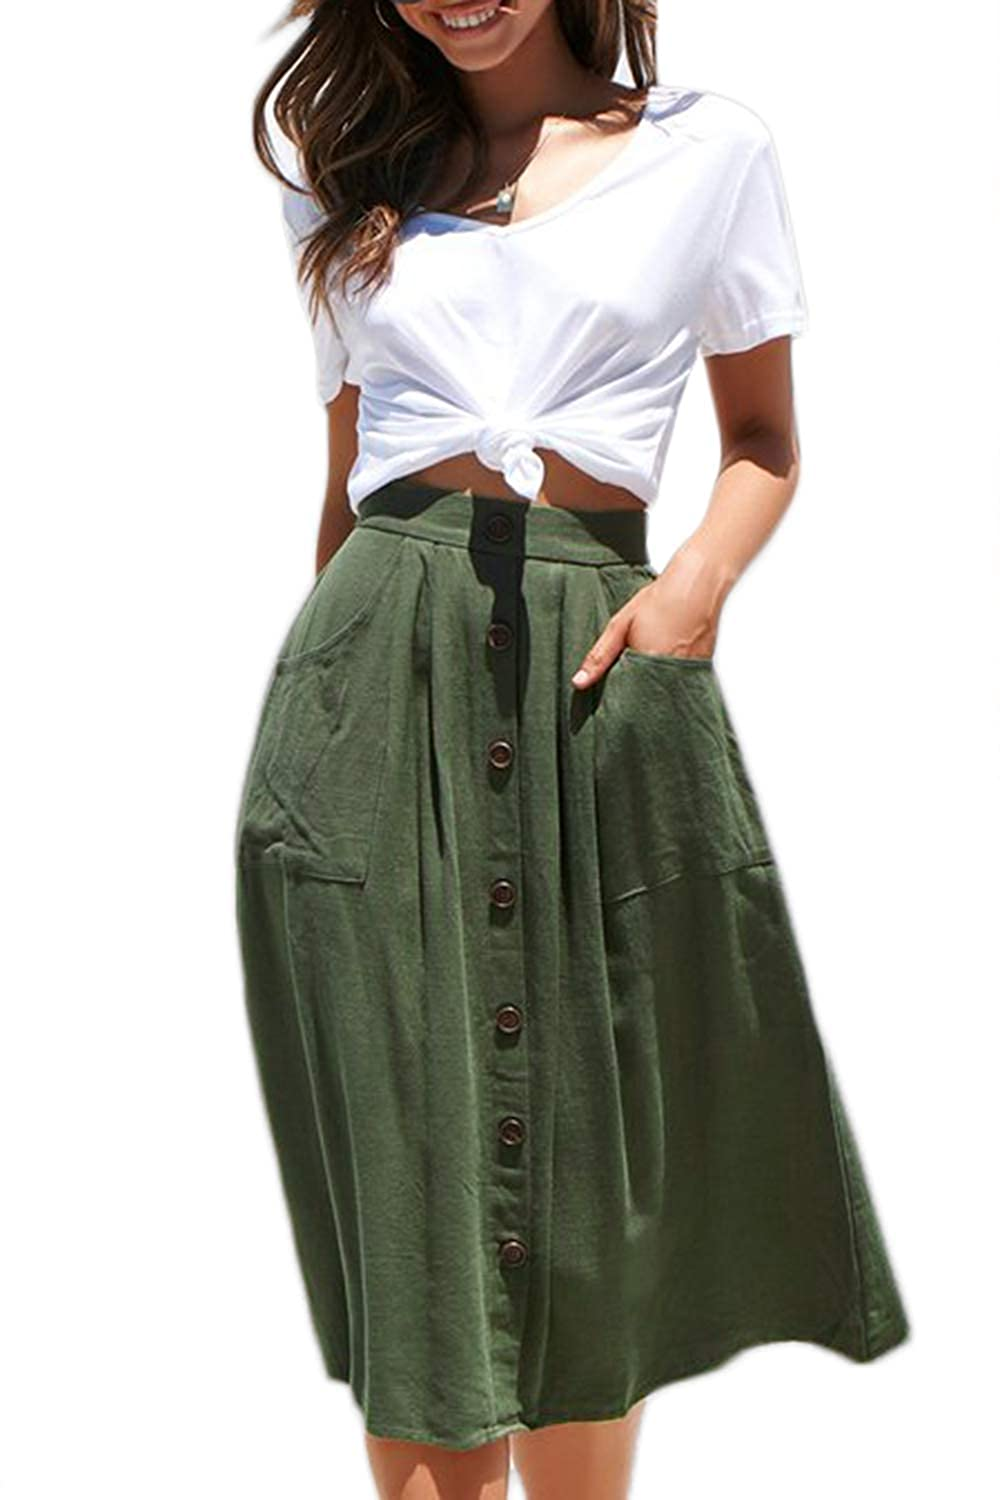 d420f624b78e Meyeeka Womens Casual High Waist Flared A-line Skirt Pleated Midi Skirt  with Pocket at Amazon Women's Clothing store: